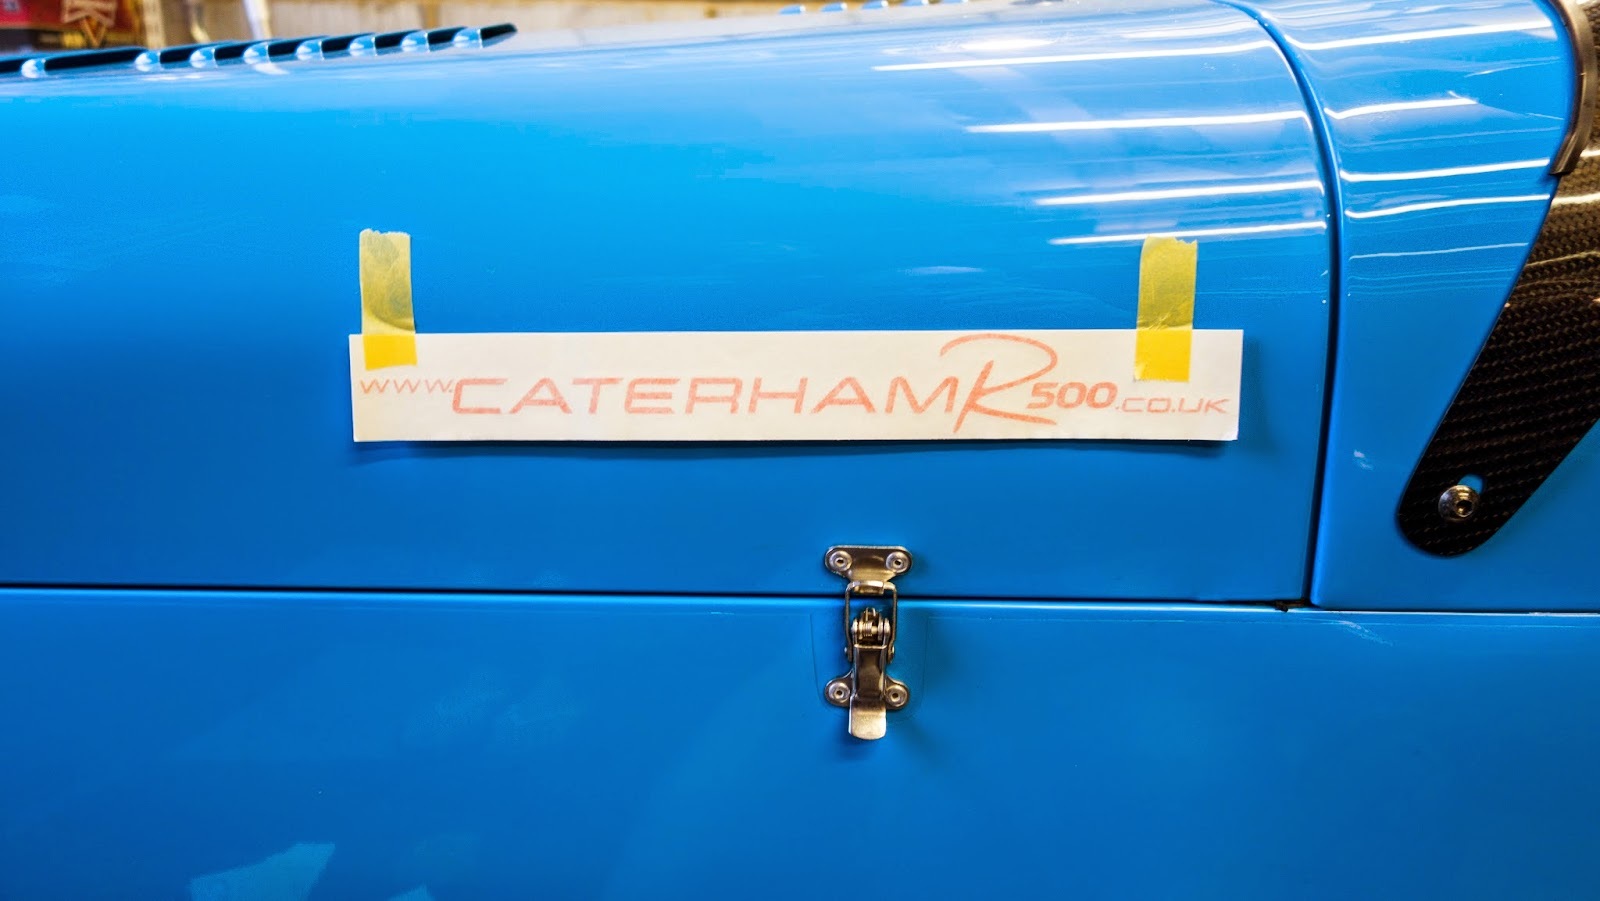 www.caterhamr500.co.uk decal lined up, ready for fitting.